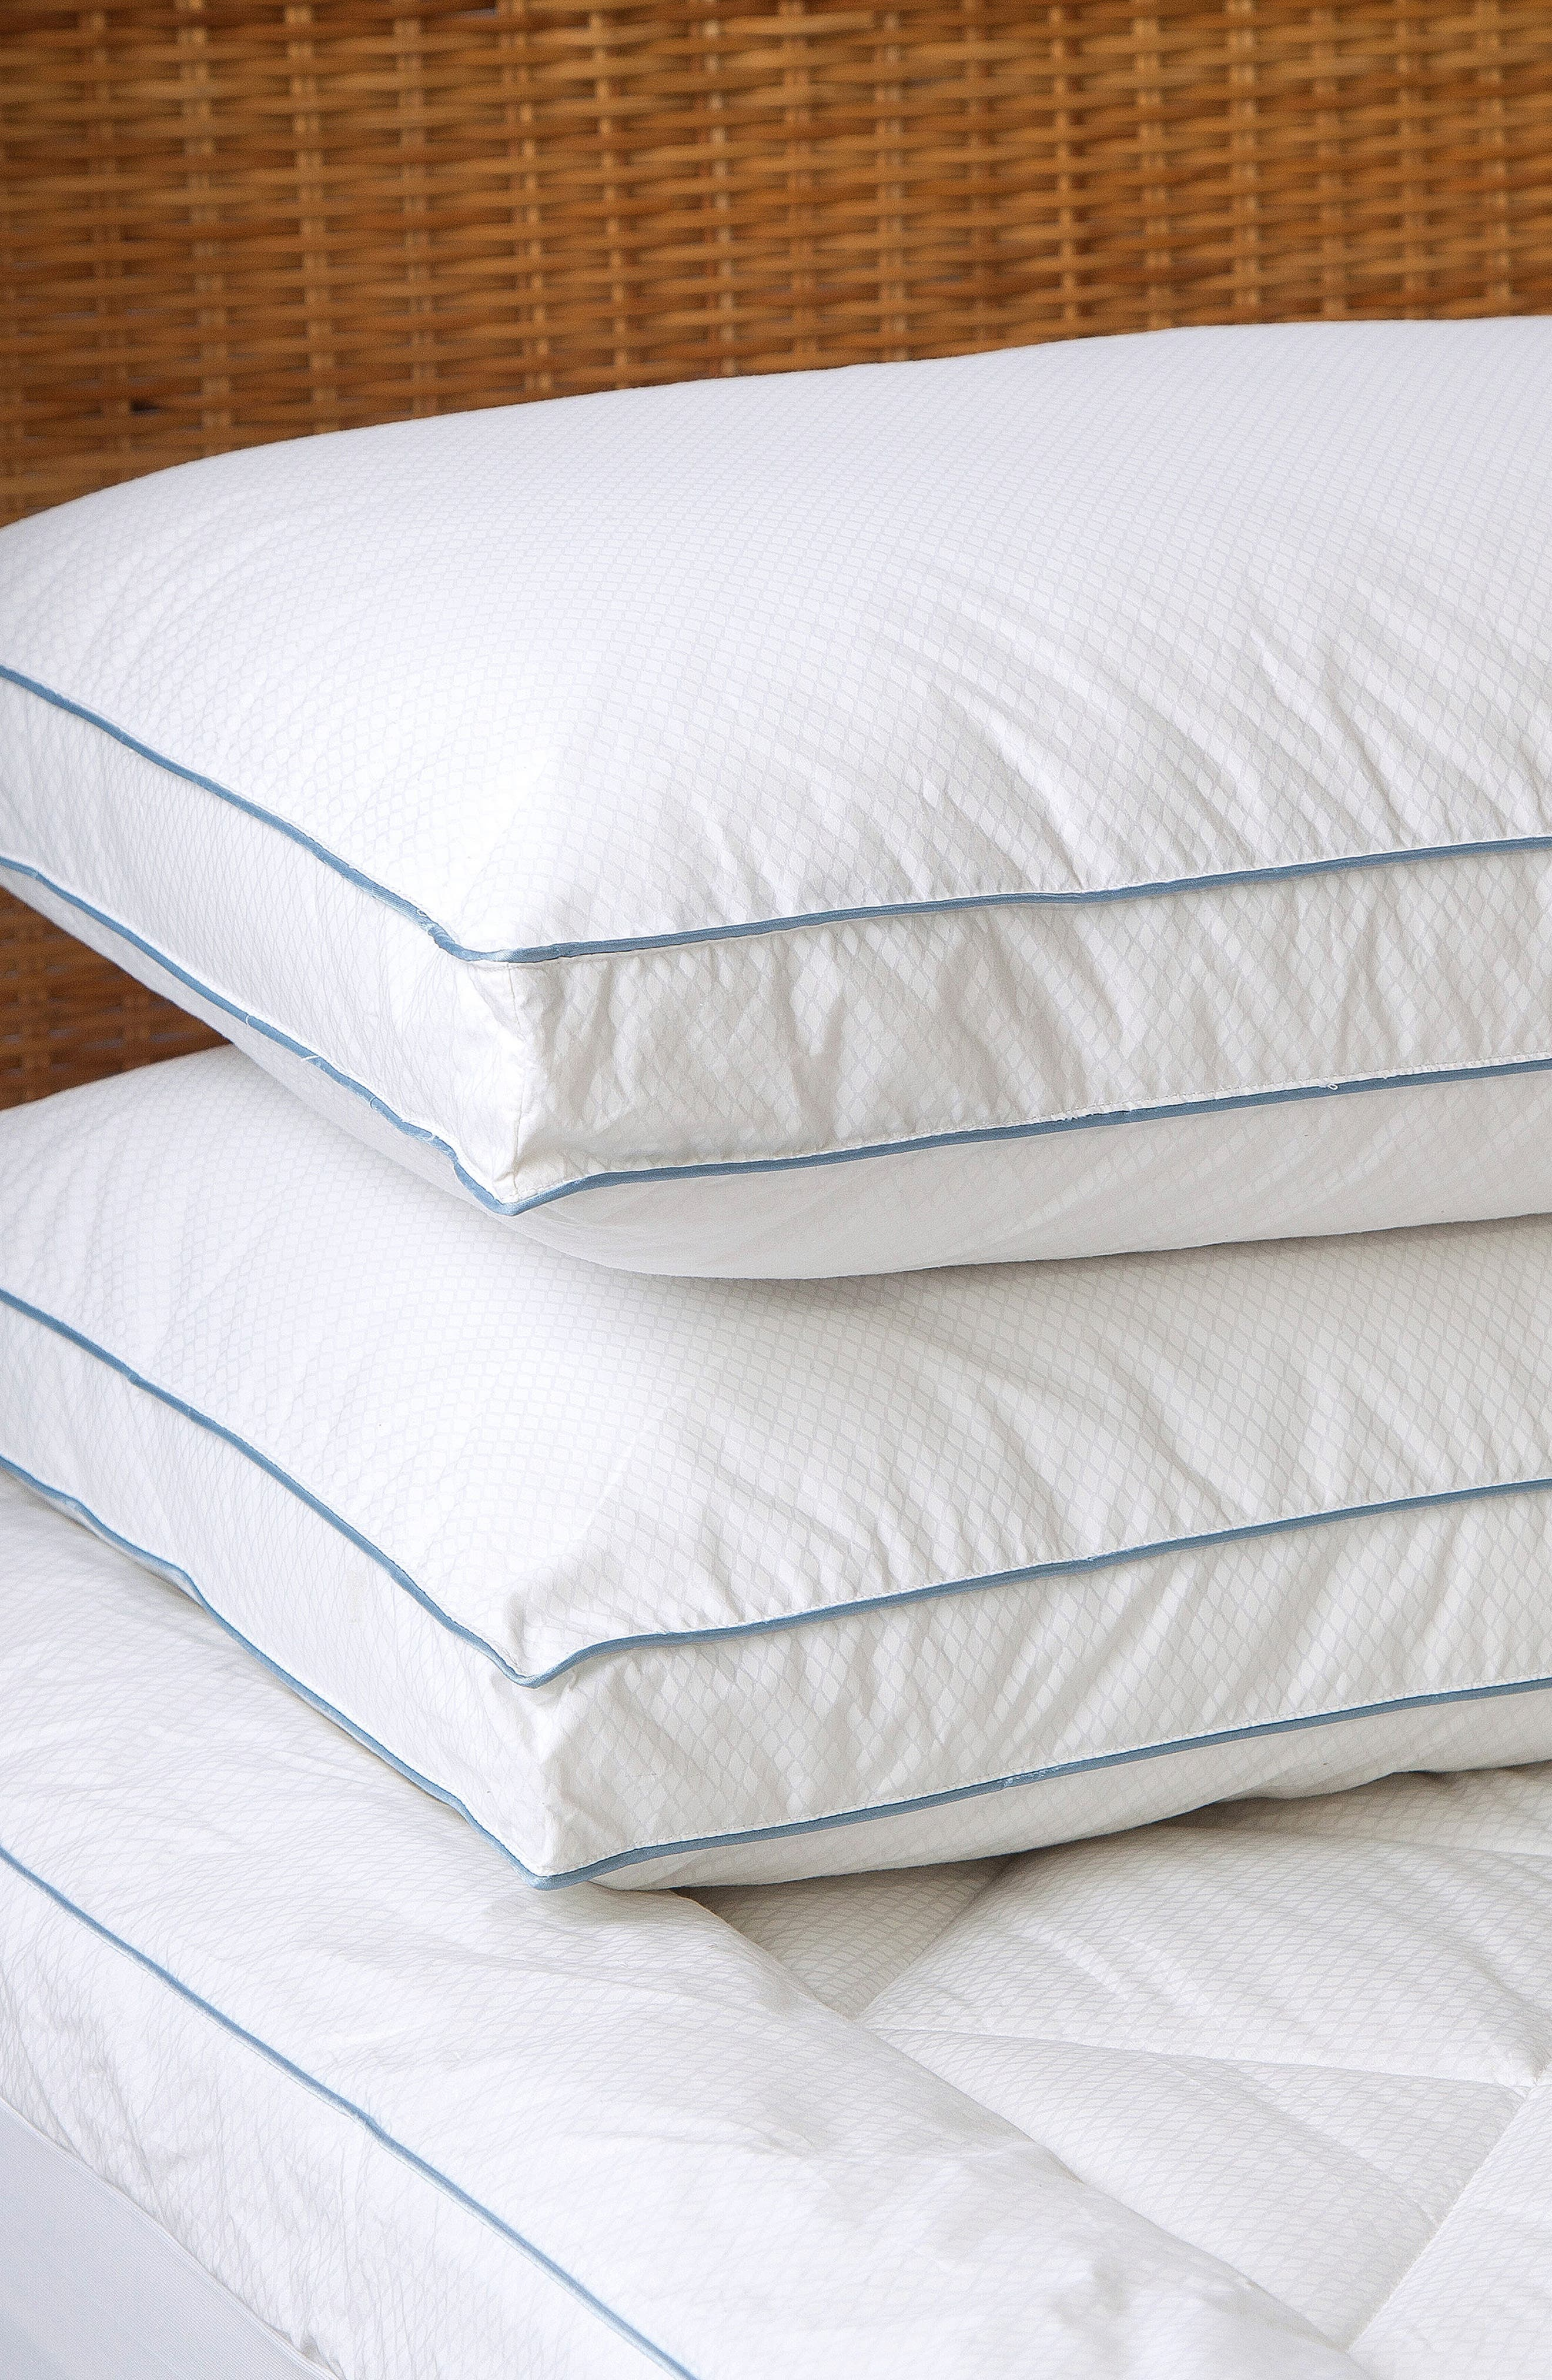 Gusseted Pillow,                             Alternate thumbnail 2, color,                             White